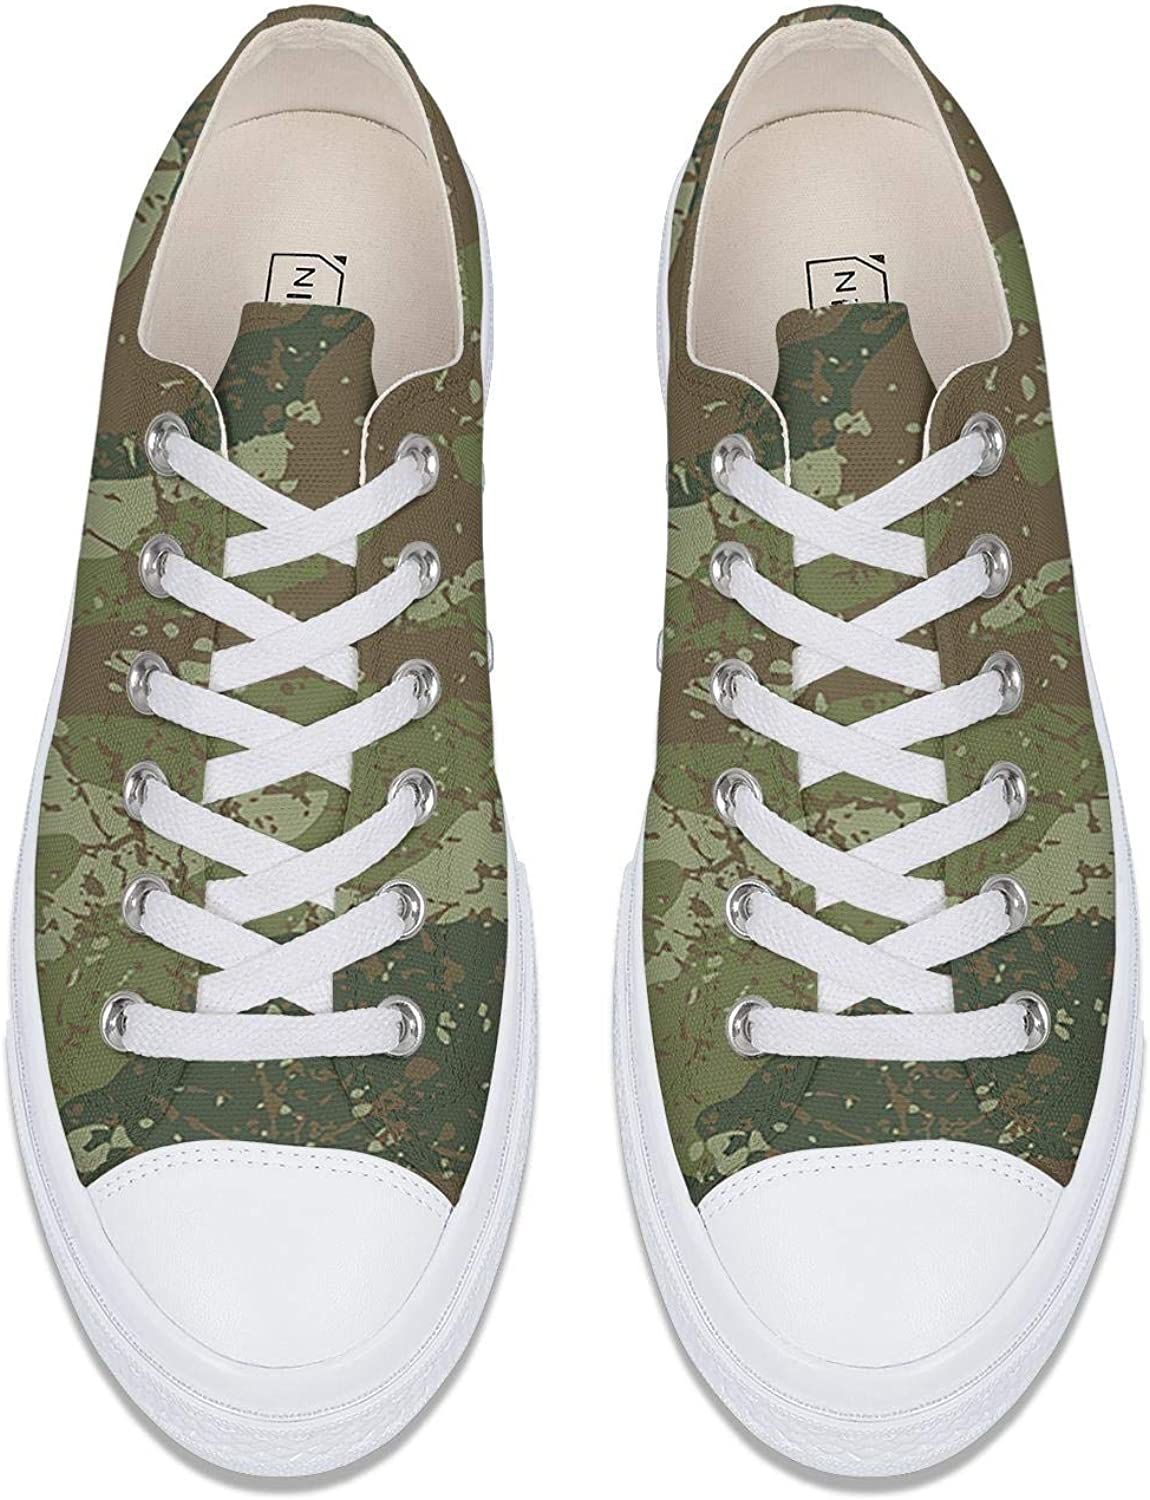 WCAO Military Camo Camouflage Texture Womens Low Top Canvas Shoe Flat Bottom Shoes Funky Clipper Sneakers